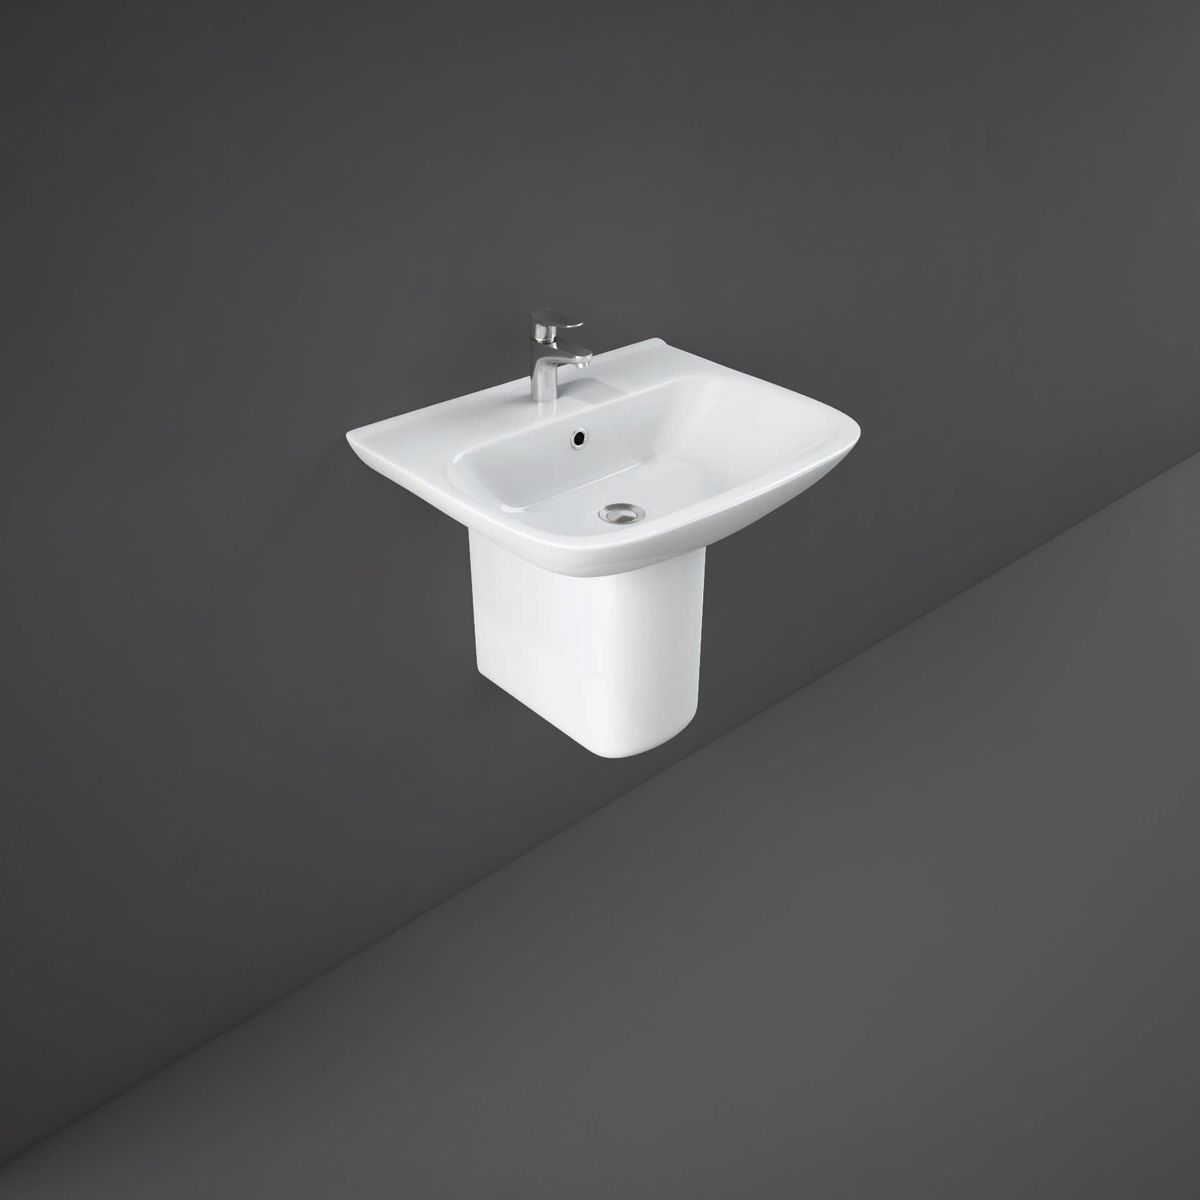 RAK Origin 62 1 Tap Hole Basin with Semi Pedestal 650mm